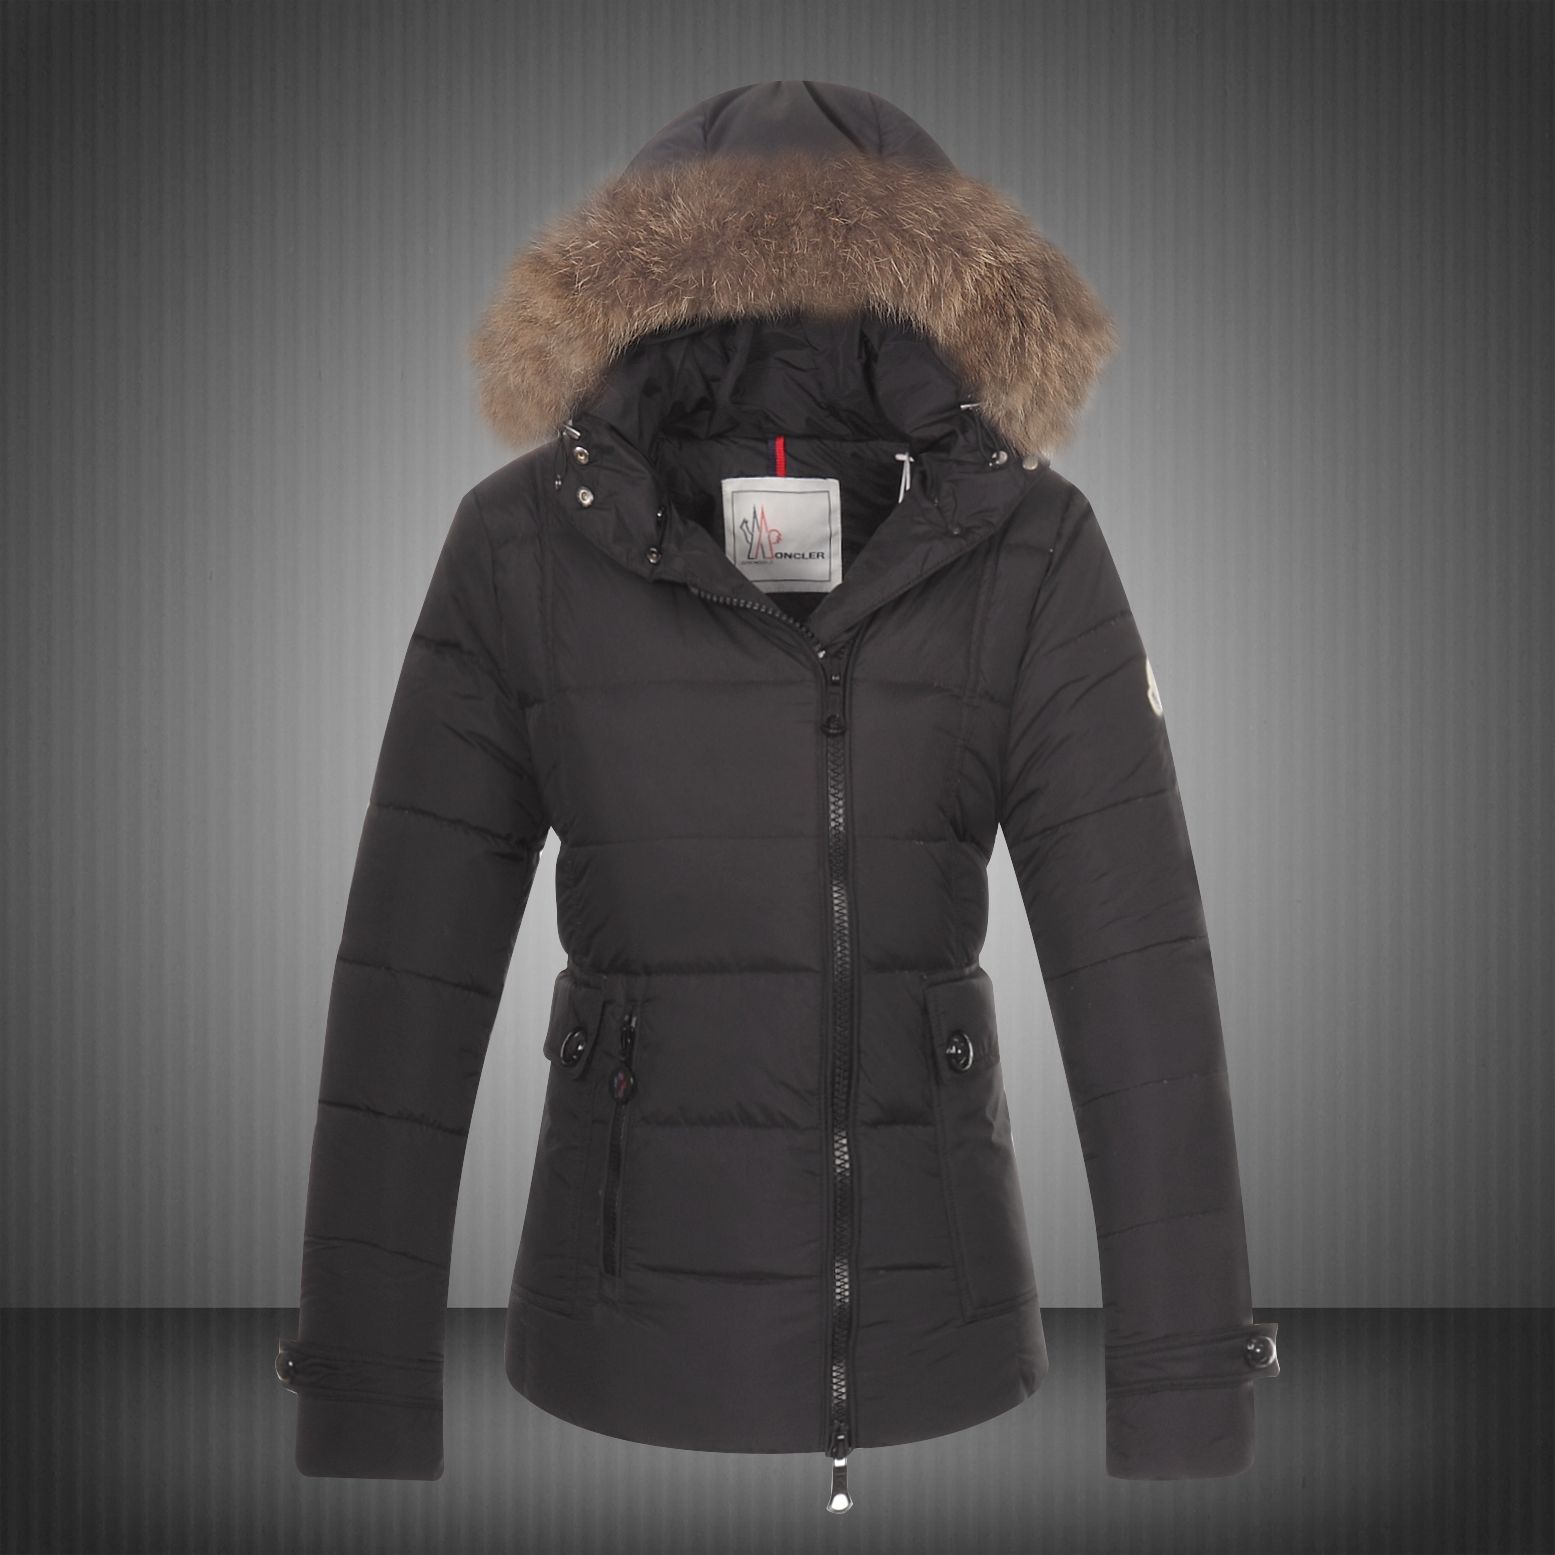 Moncler Outlet UK, Cheap Moncler Down Jackets, Coats, Vests Sale 2014 Moncler Bryone Down Jacket For Women Black -